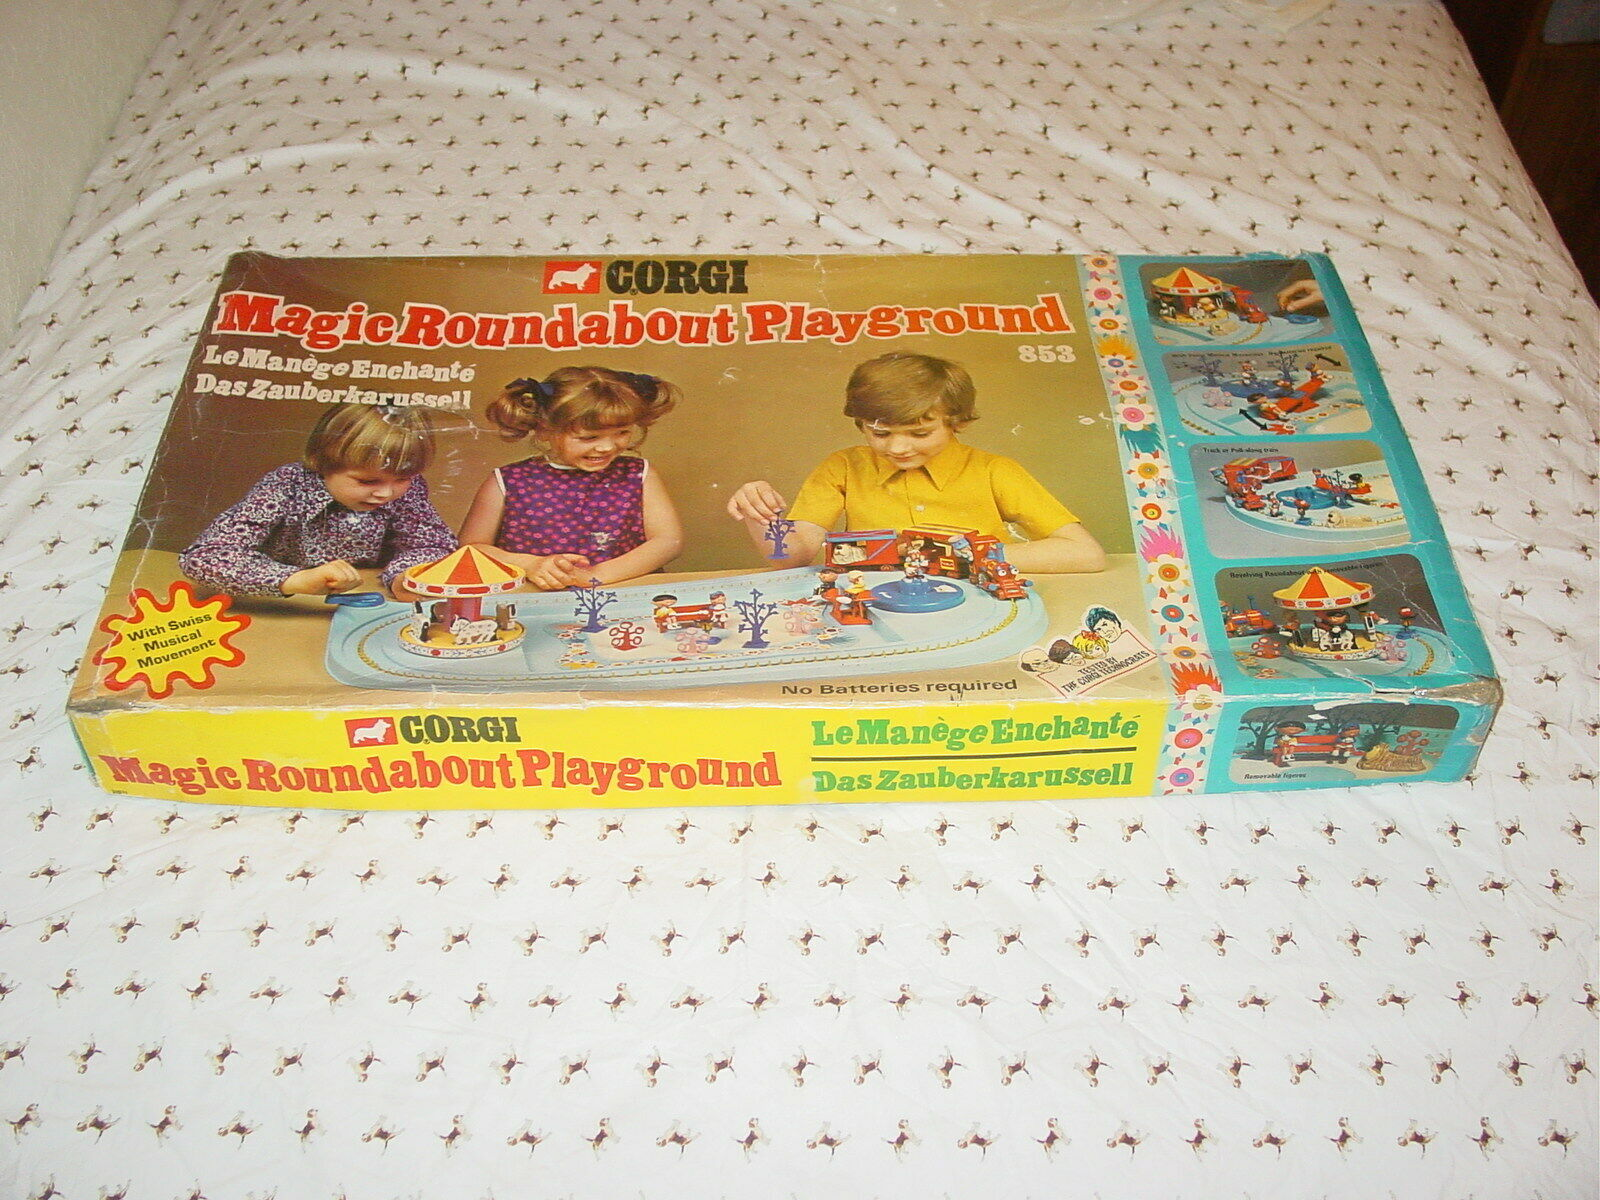 Corgi Toy Magic Roundabout Playground Playset - USED with Box - Very Rare